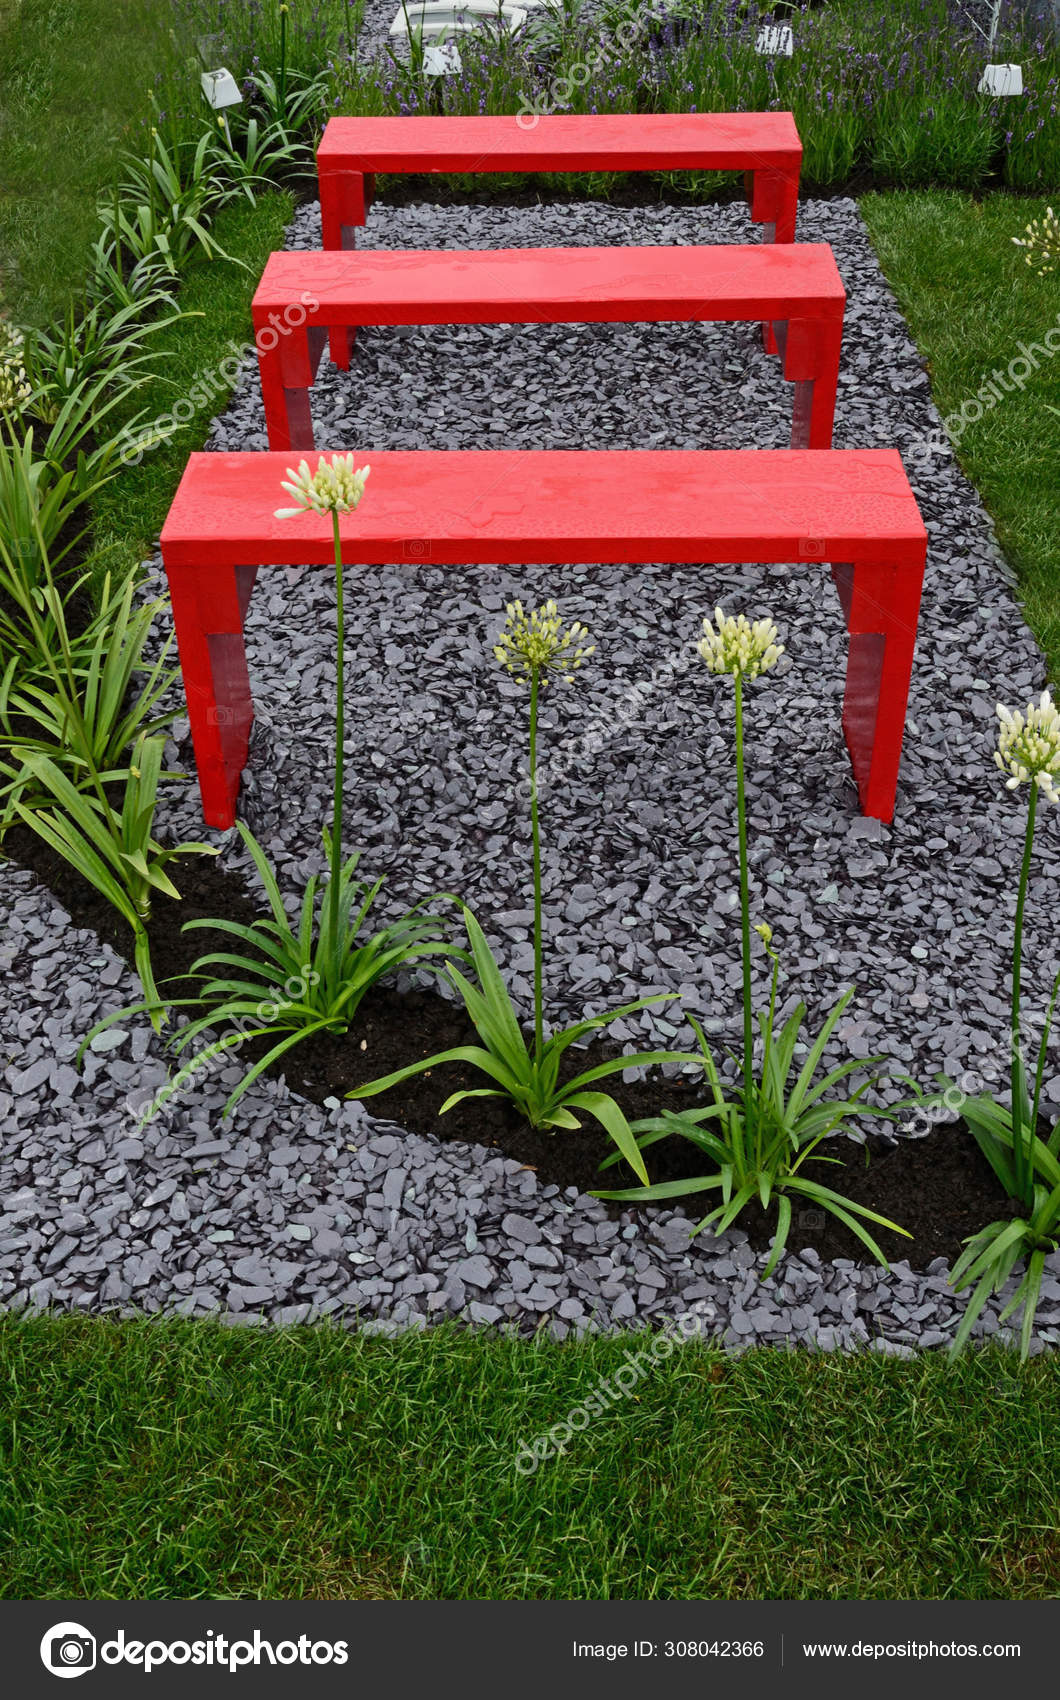 A Garden Design With Picture Showing Bright Red Benches With